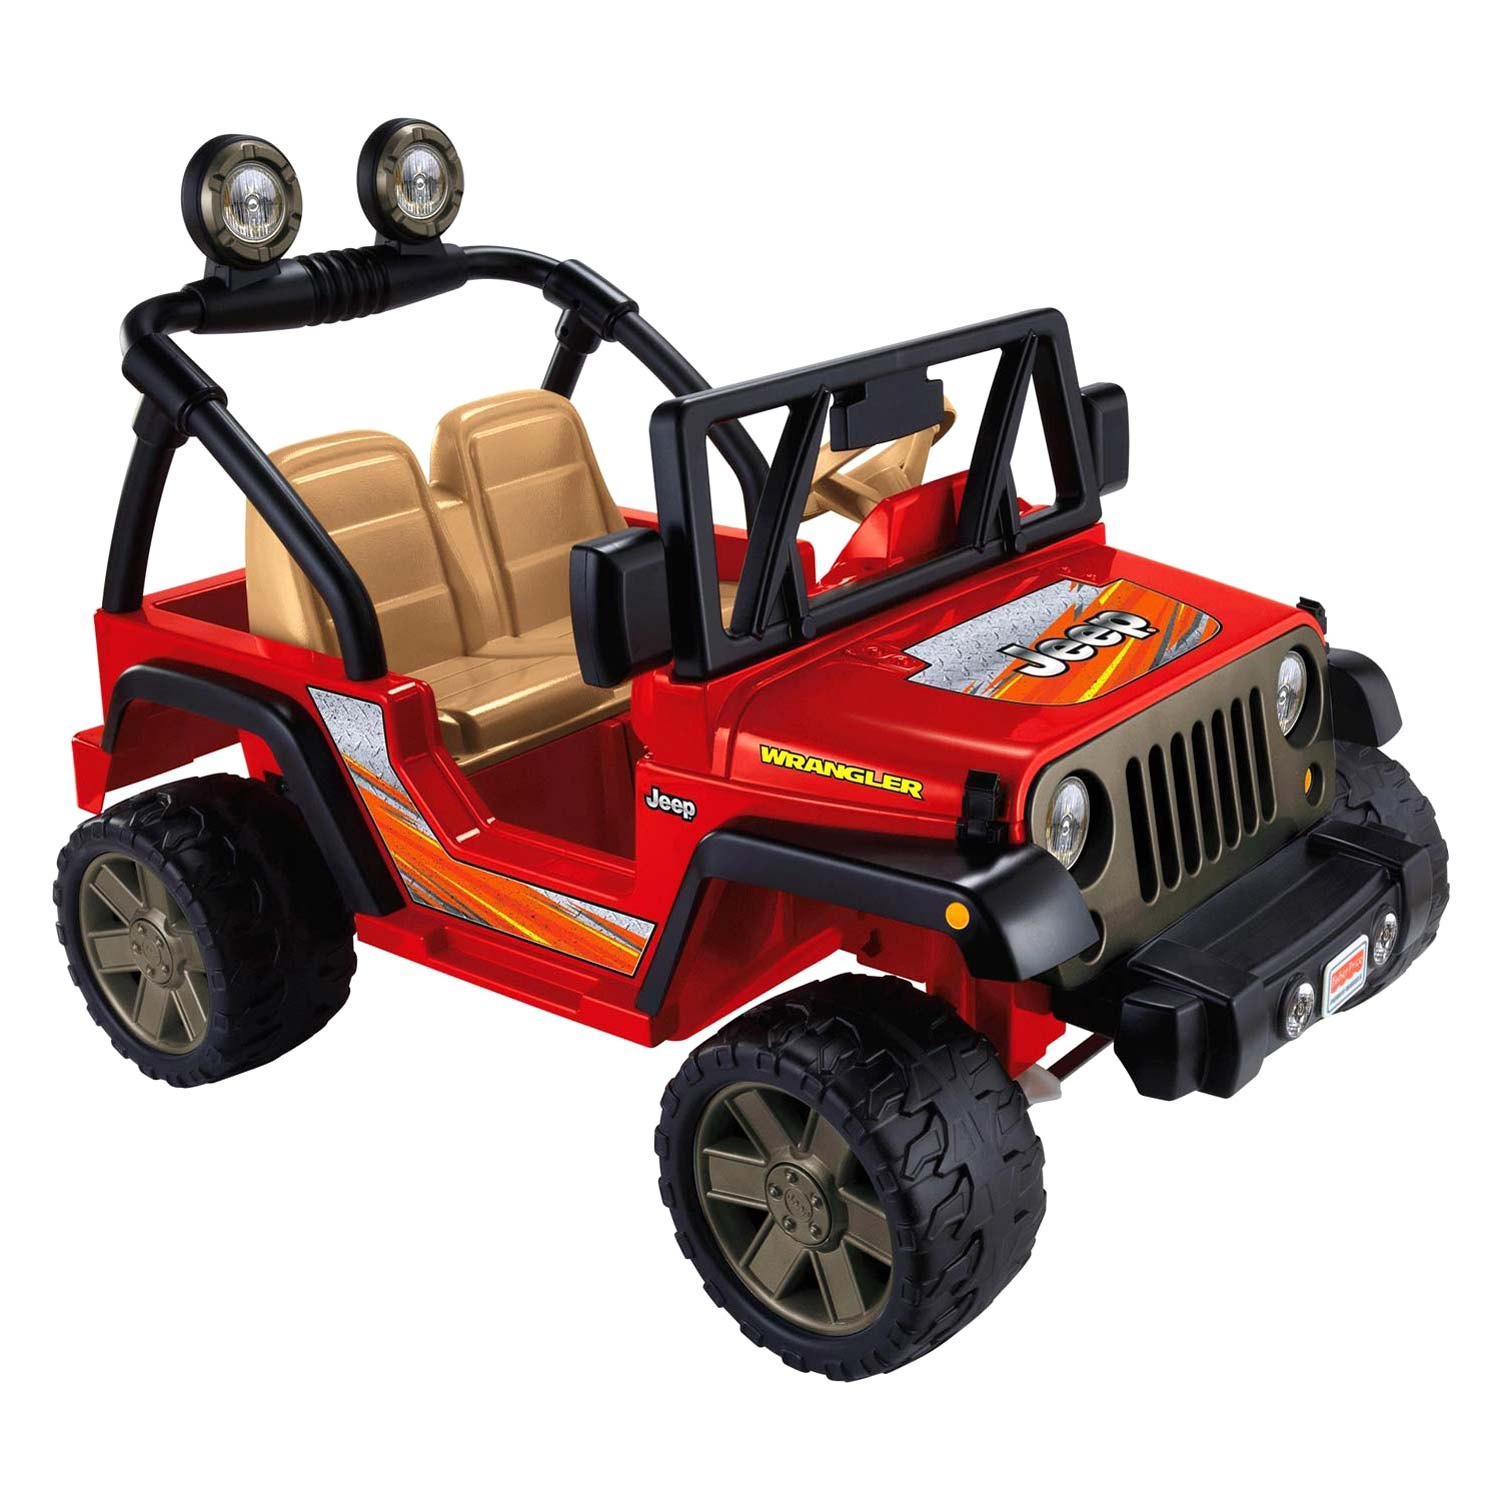 Every child will have a chance to win a Jeep Power Wheels!